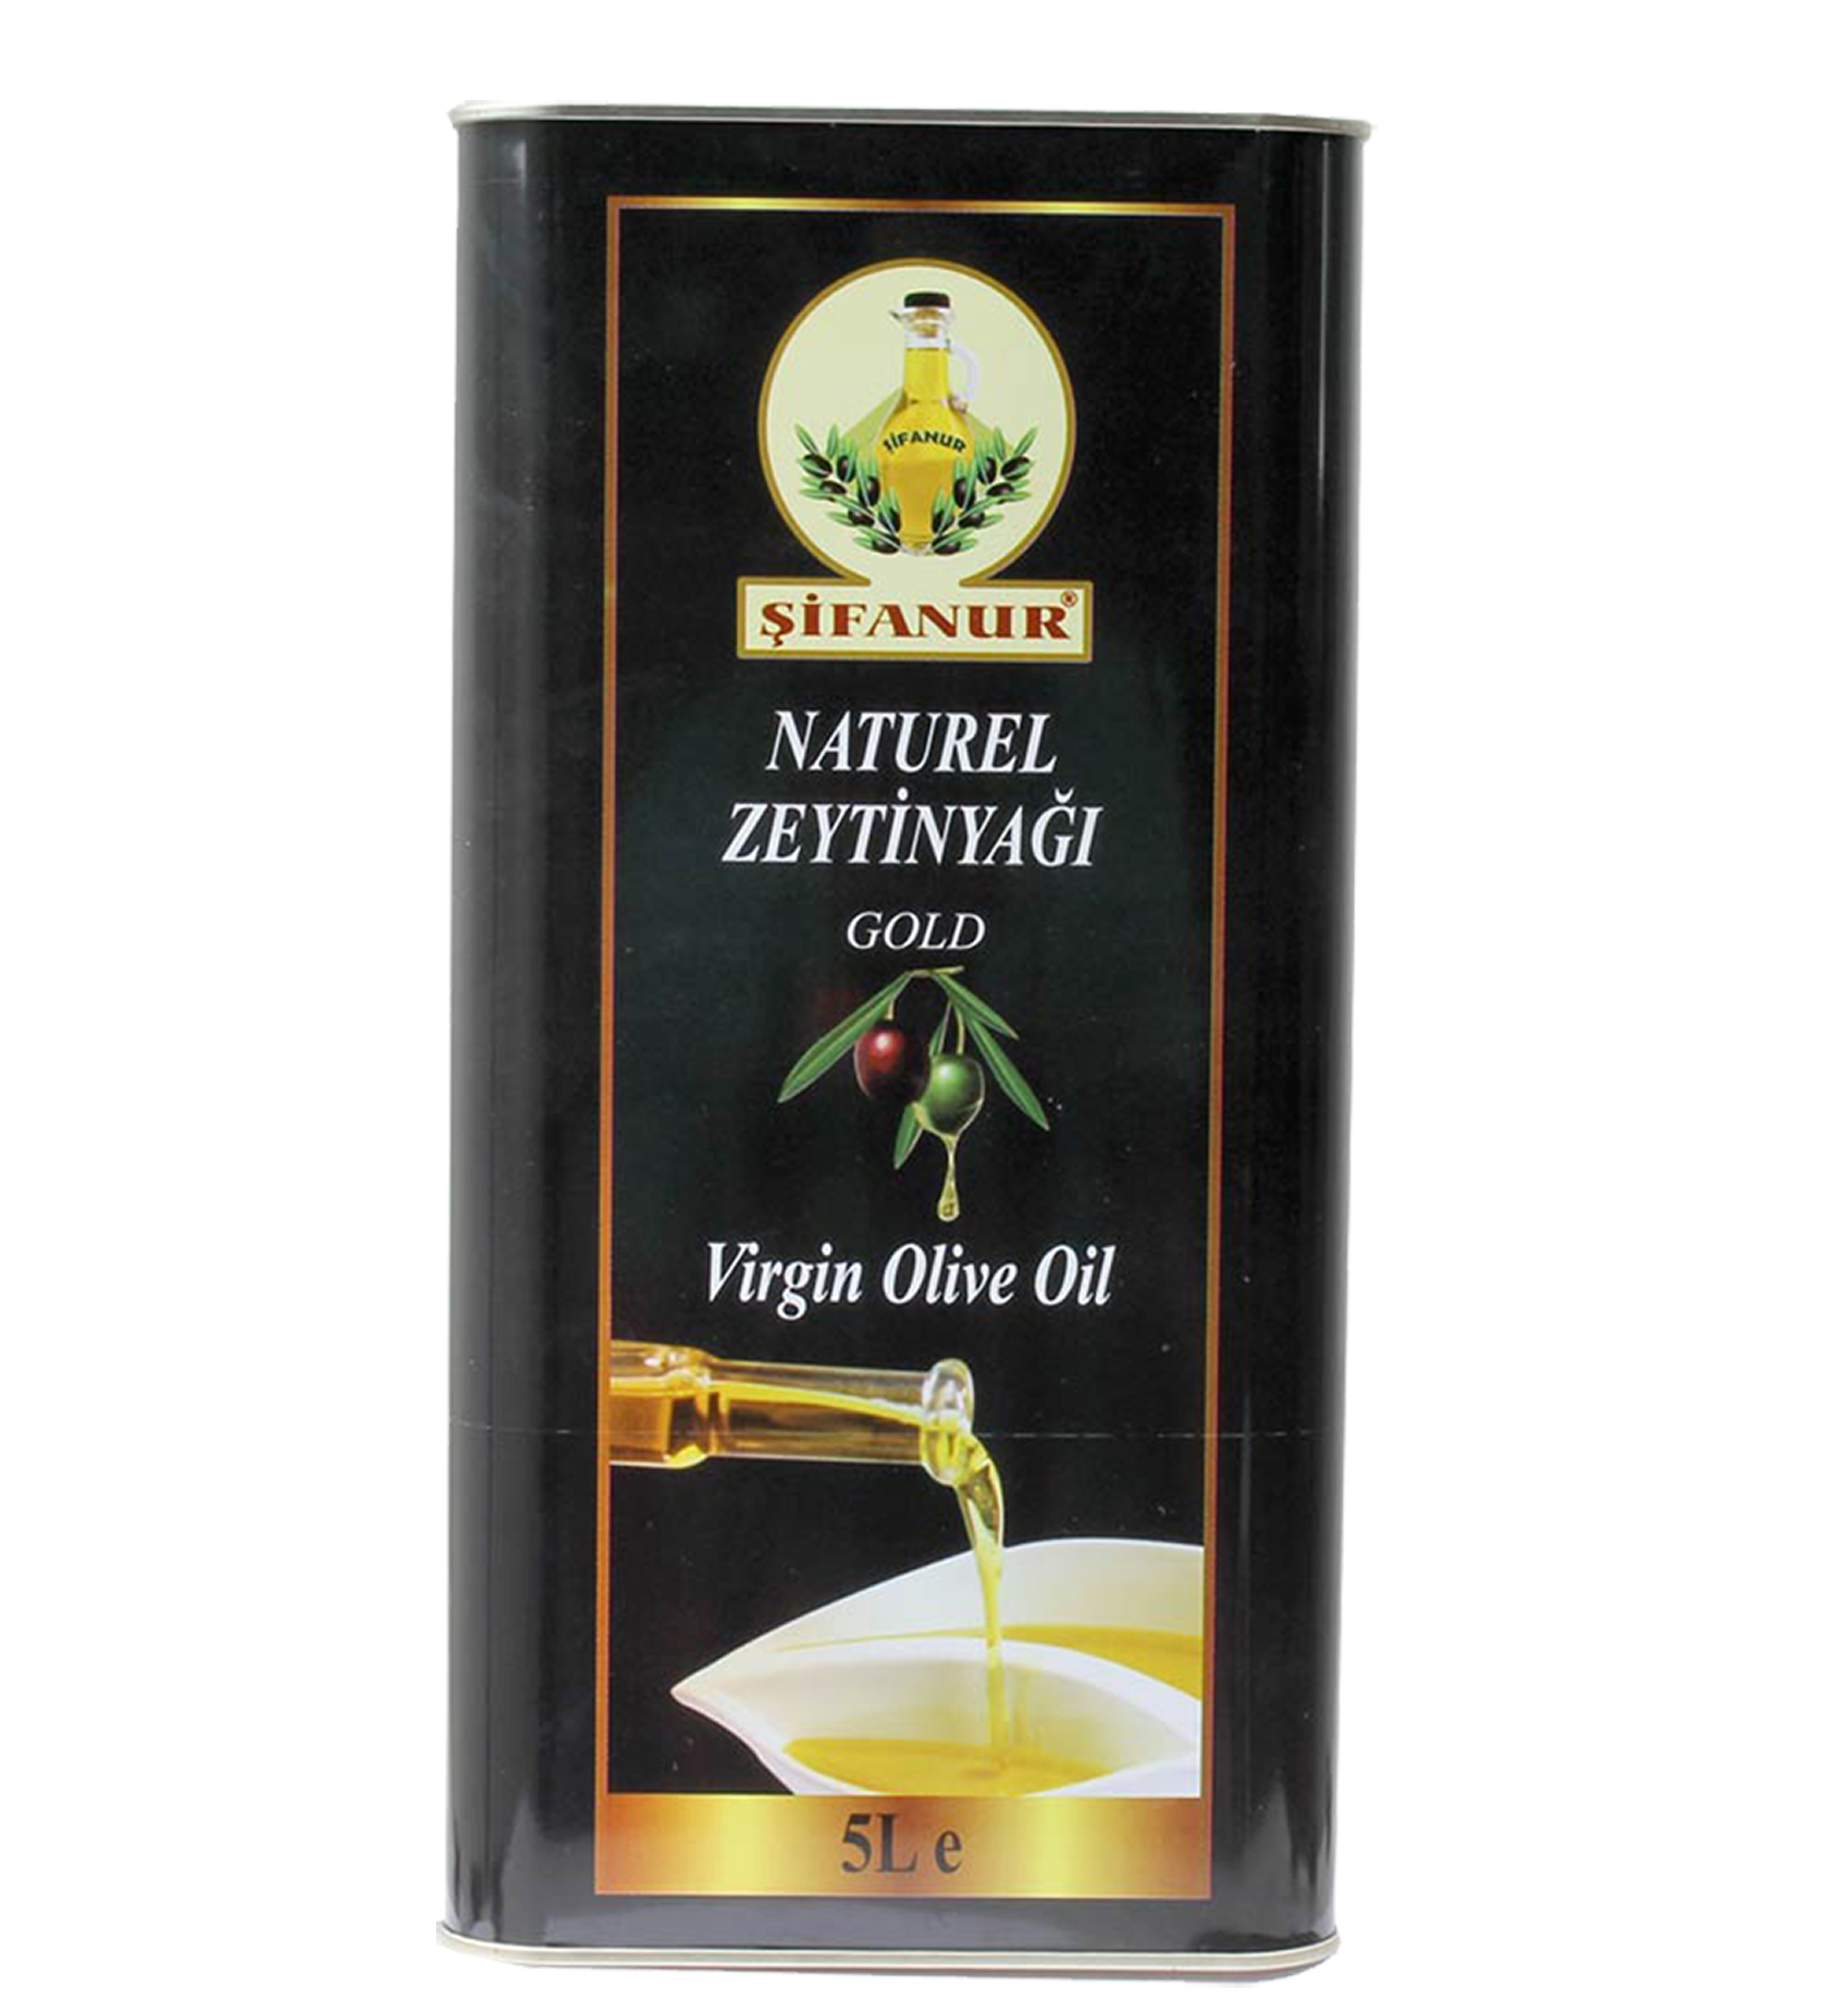 Sifanur Virgin Olive Oil - 5 L Tin Image